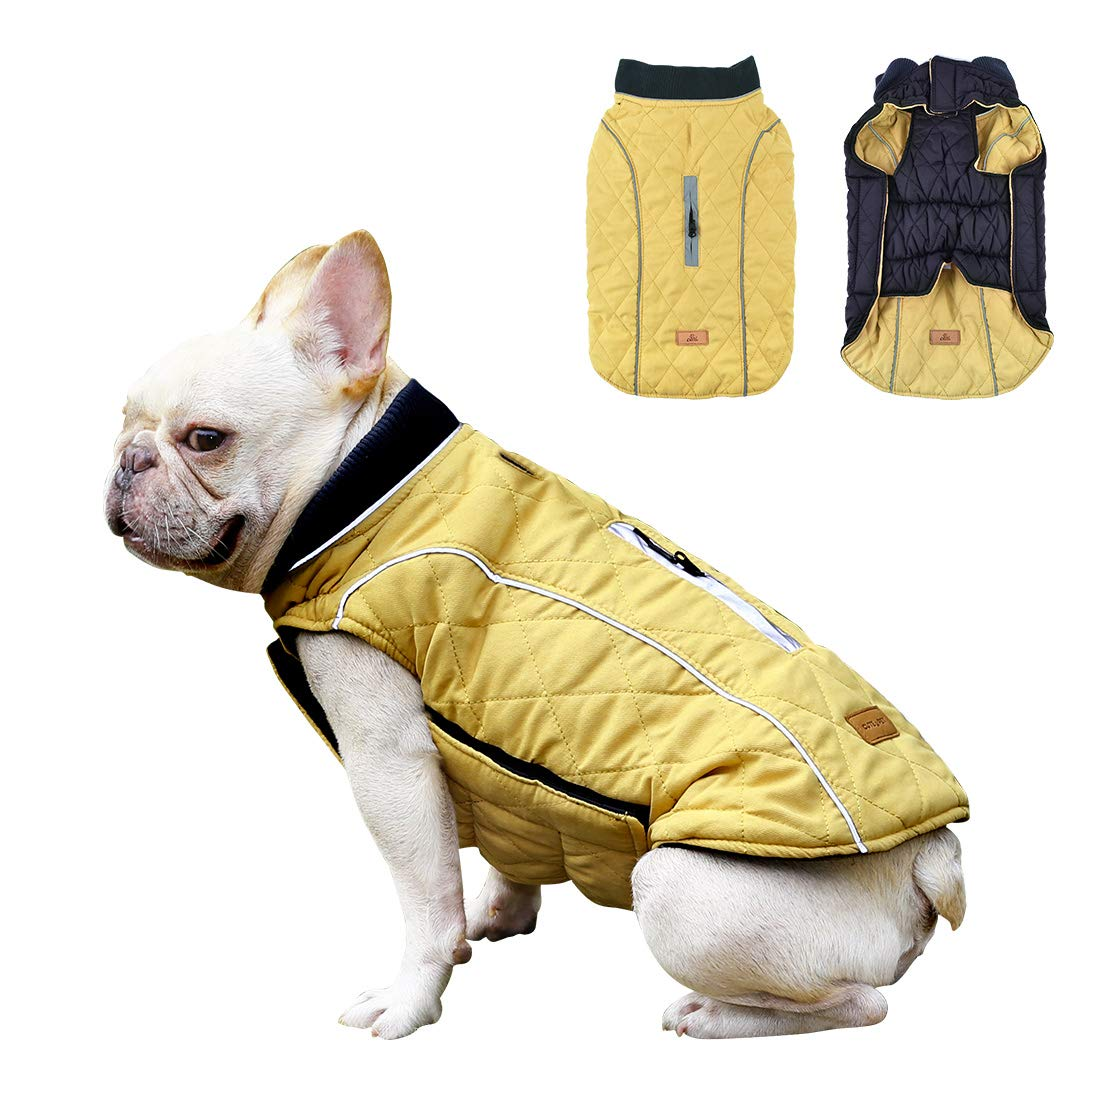 Yellow L(Neck 13\ Yellow L(Neck 13\ Dog Jacket Waterproof Pet Coat Reversible Windproof Dog Sweater Reflective Strips Winter Warm Puppy Vest for Small Medium Large Dogs Yellow L